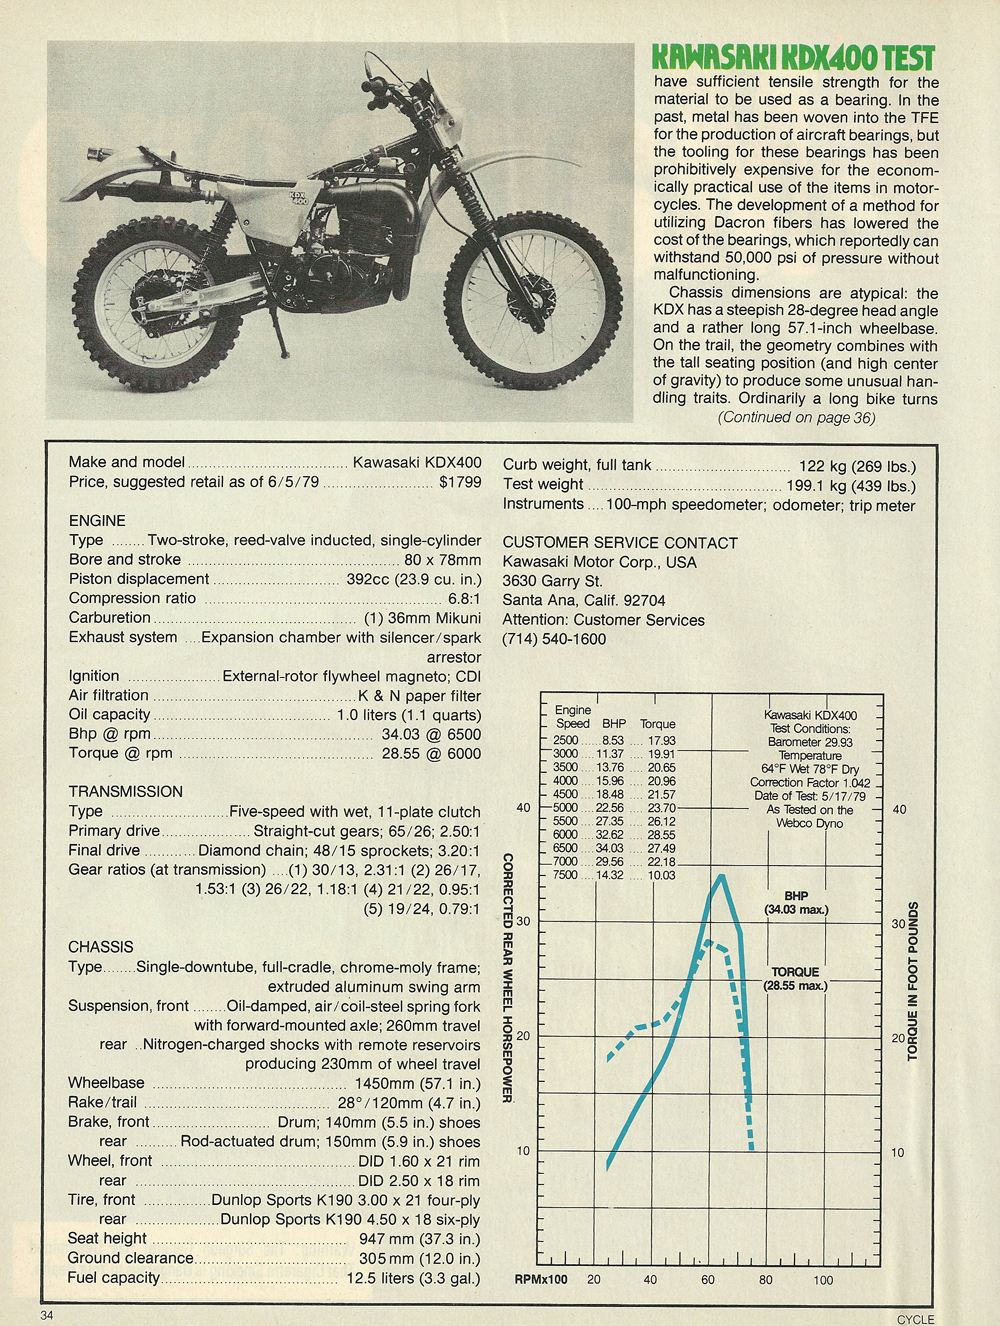 1979 Kawasaki KDX400 off road test 6.jpg